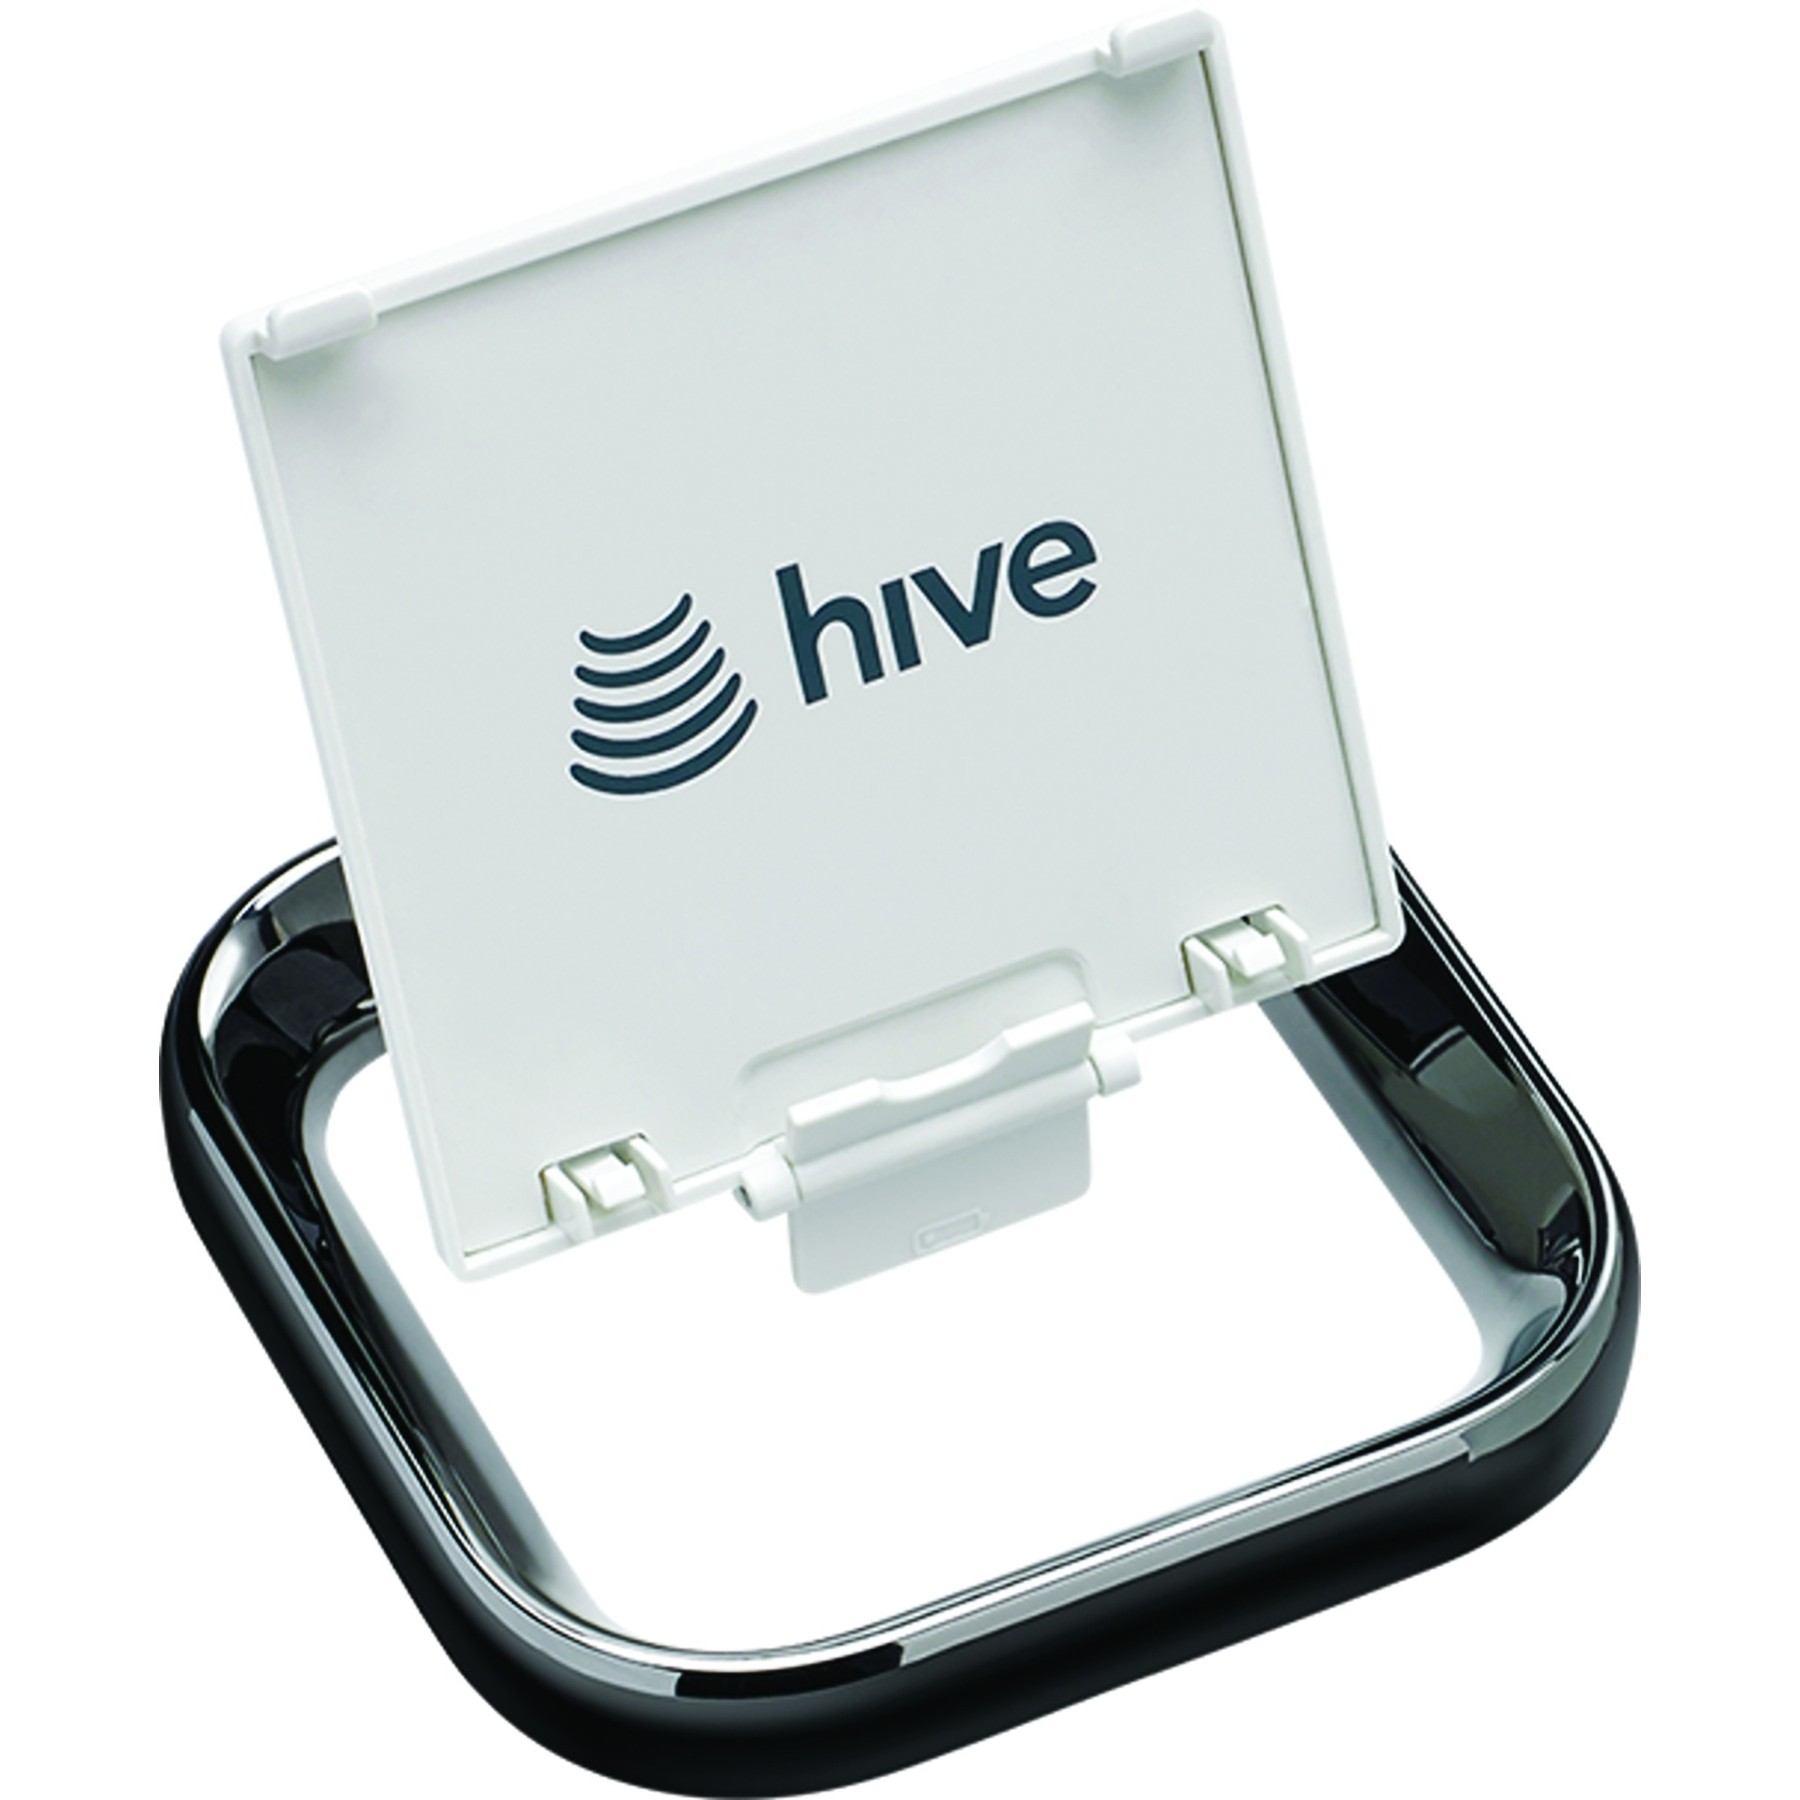 hive thermostat stand from solid zinc alloy material in. Black Bedroom Furniture Sets. Home Design Ideas